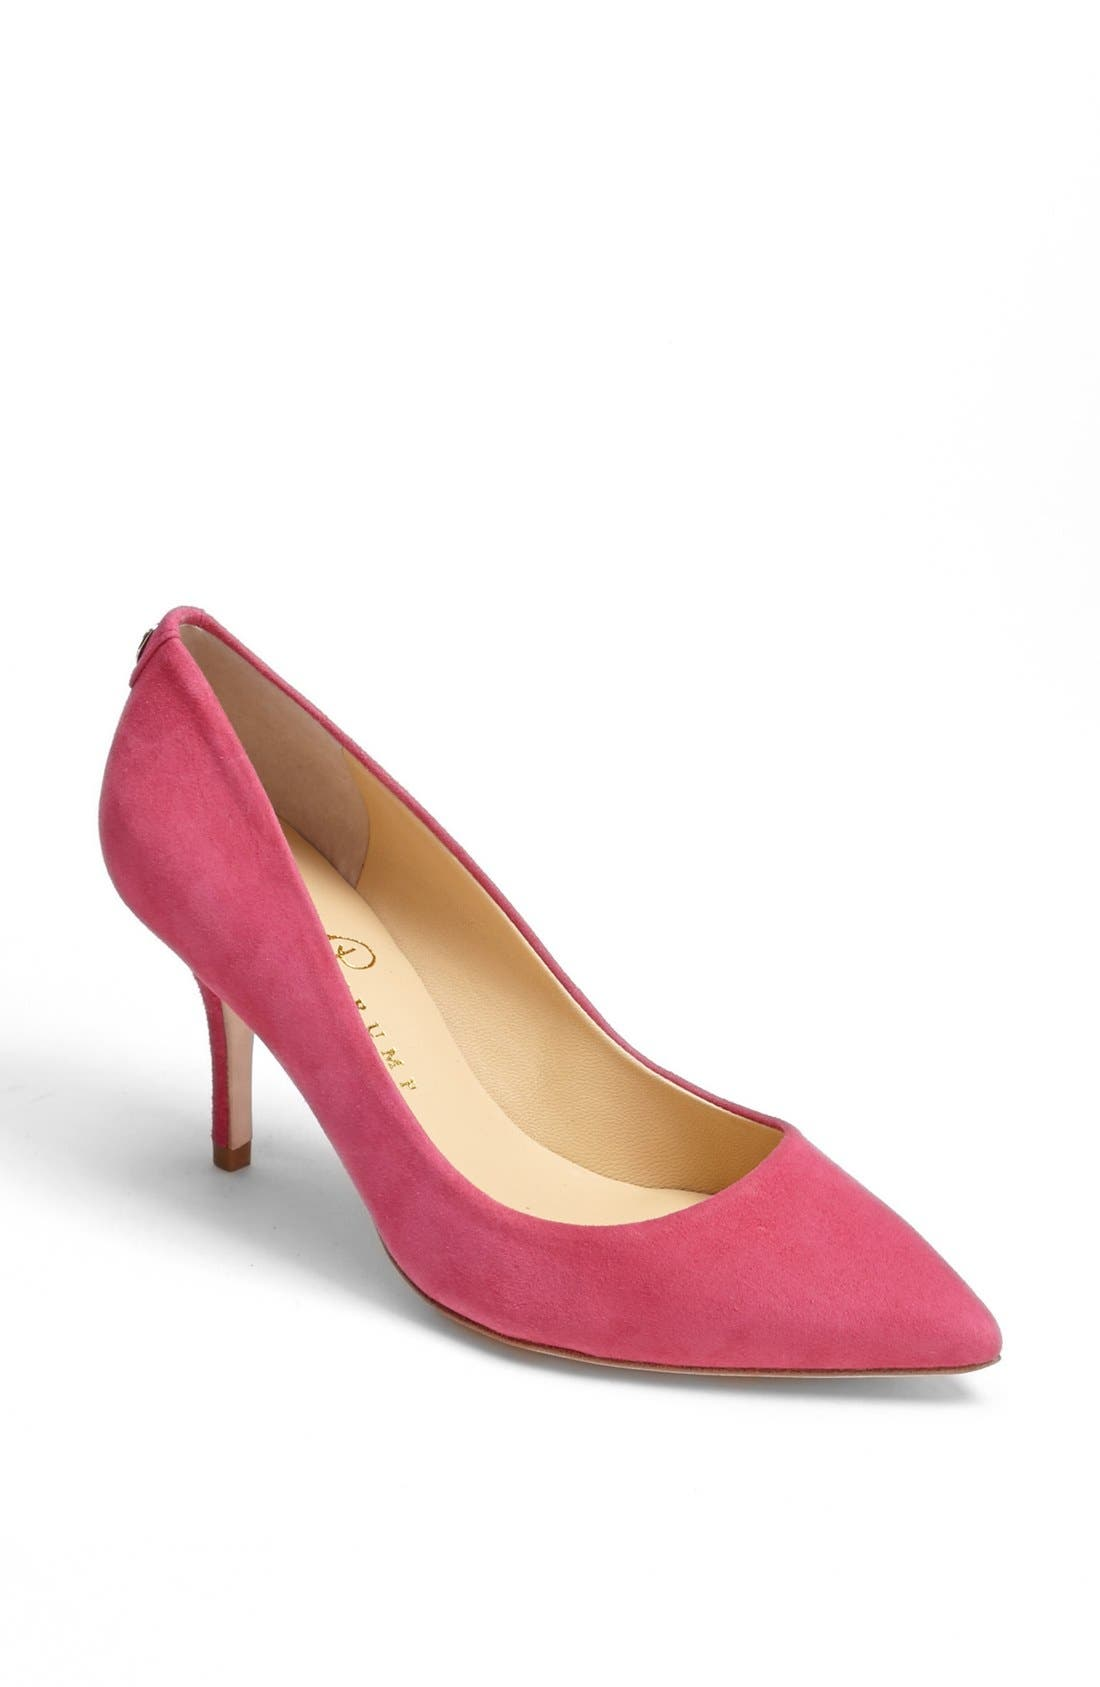 Alternate Image 1 Selected - Ivanka Trump 'Natalie' Pointed Toe Pump